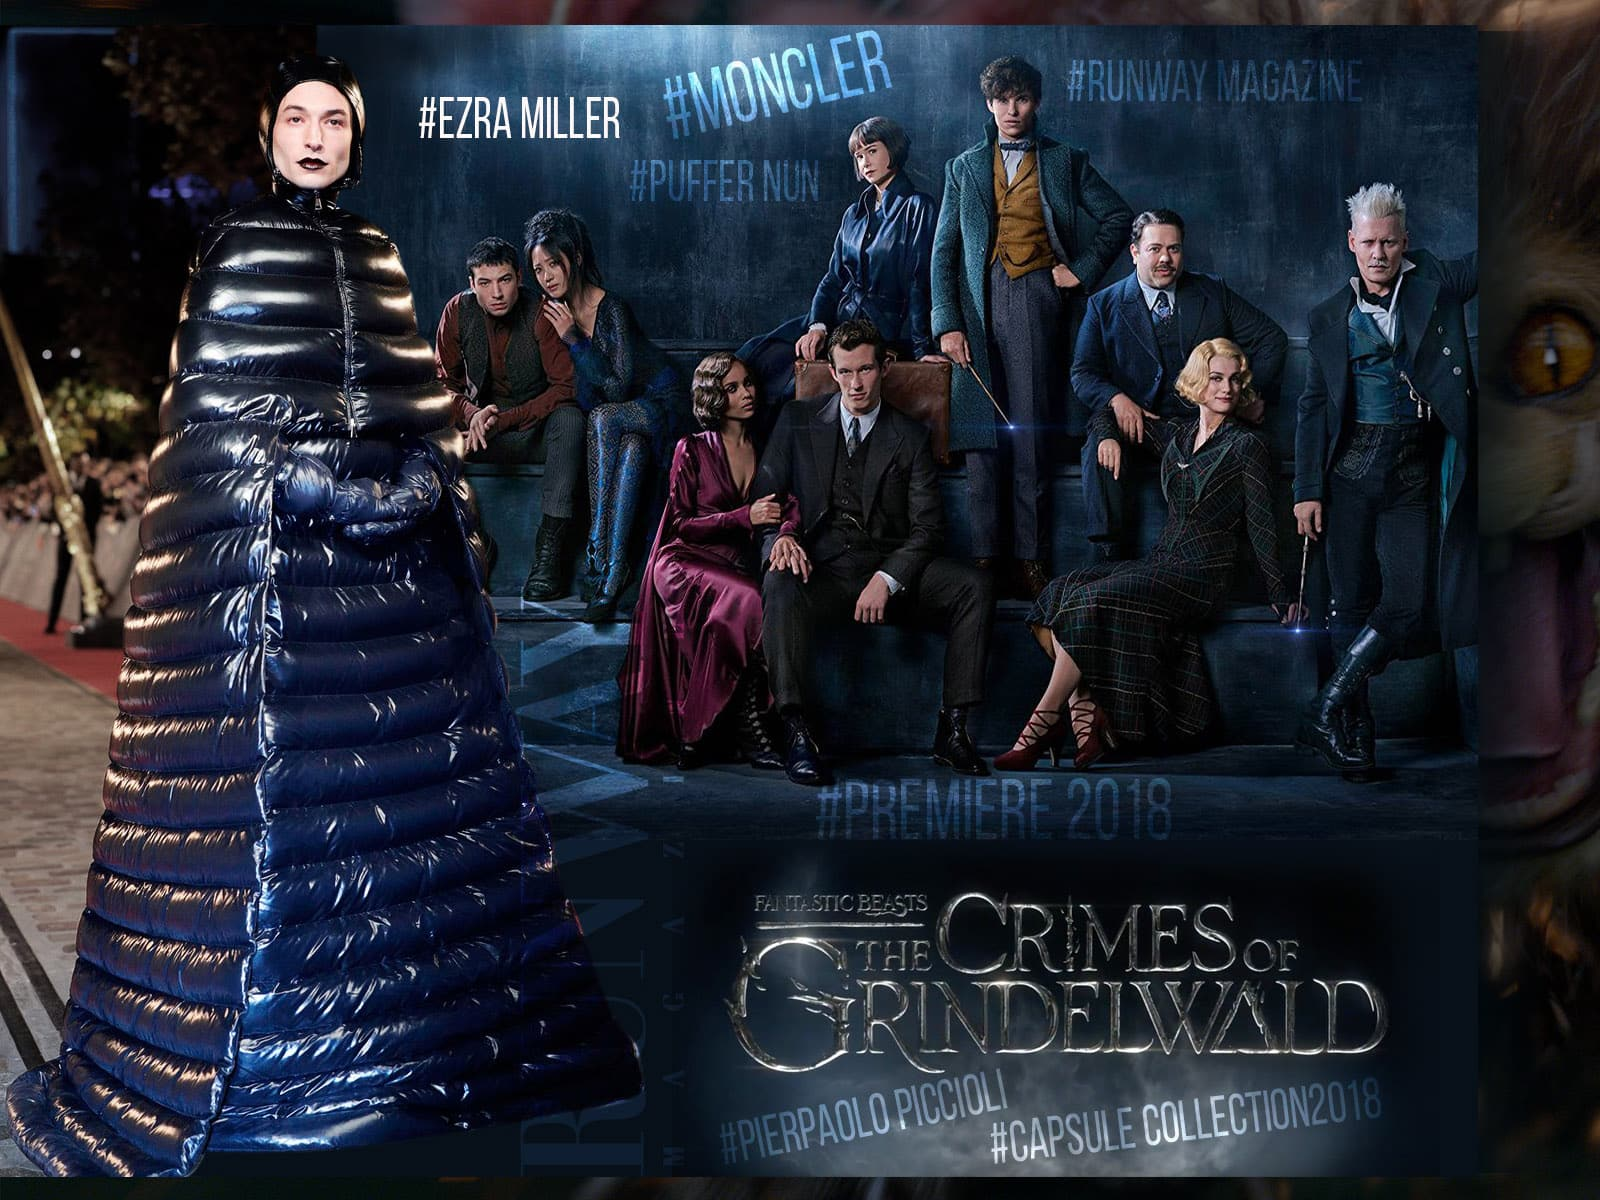 Ezra Miller - Fantastic Beasts Premiere. Moncler Puffer Coat Dress Collection 2018 by Pierpaolo Piccioli by Runway Magazine